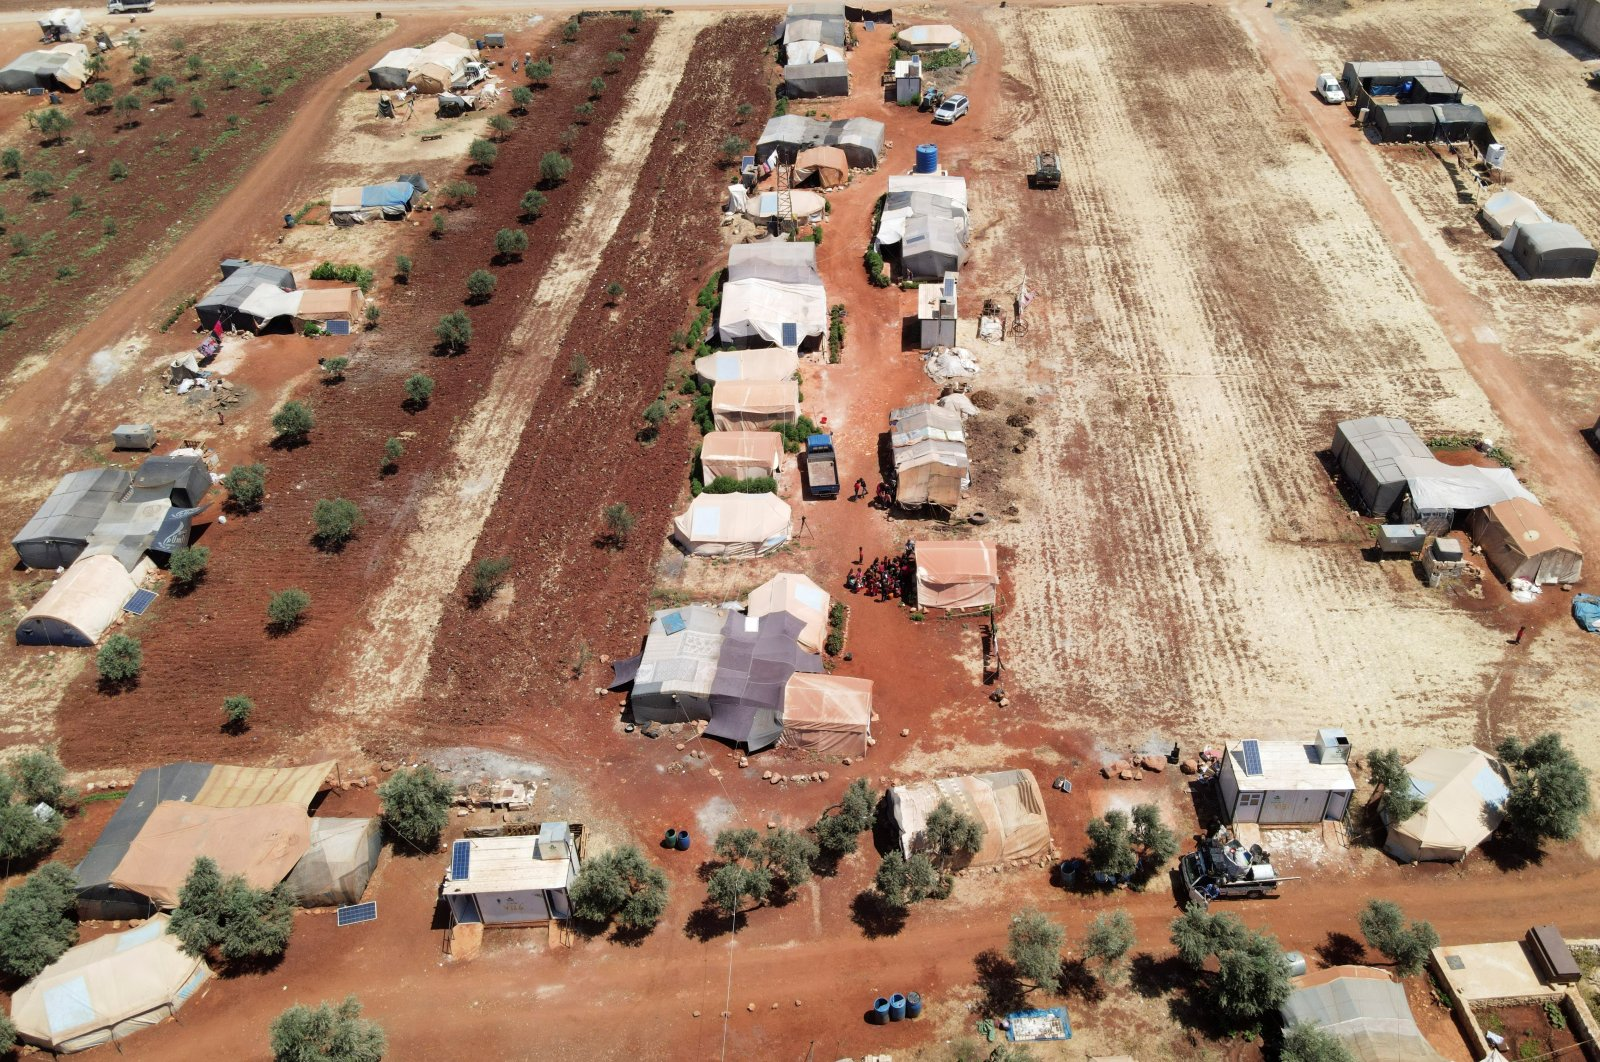 An aerial view shows tents at a camp for internally displaced people in northwestern Idlib, Syria, June 10, 2021. (REUTERS Photo)